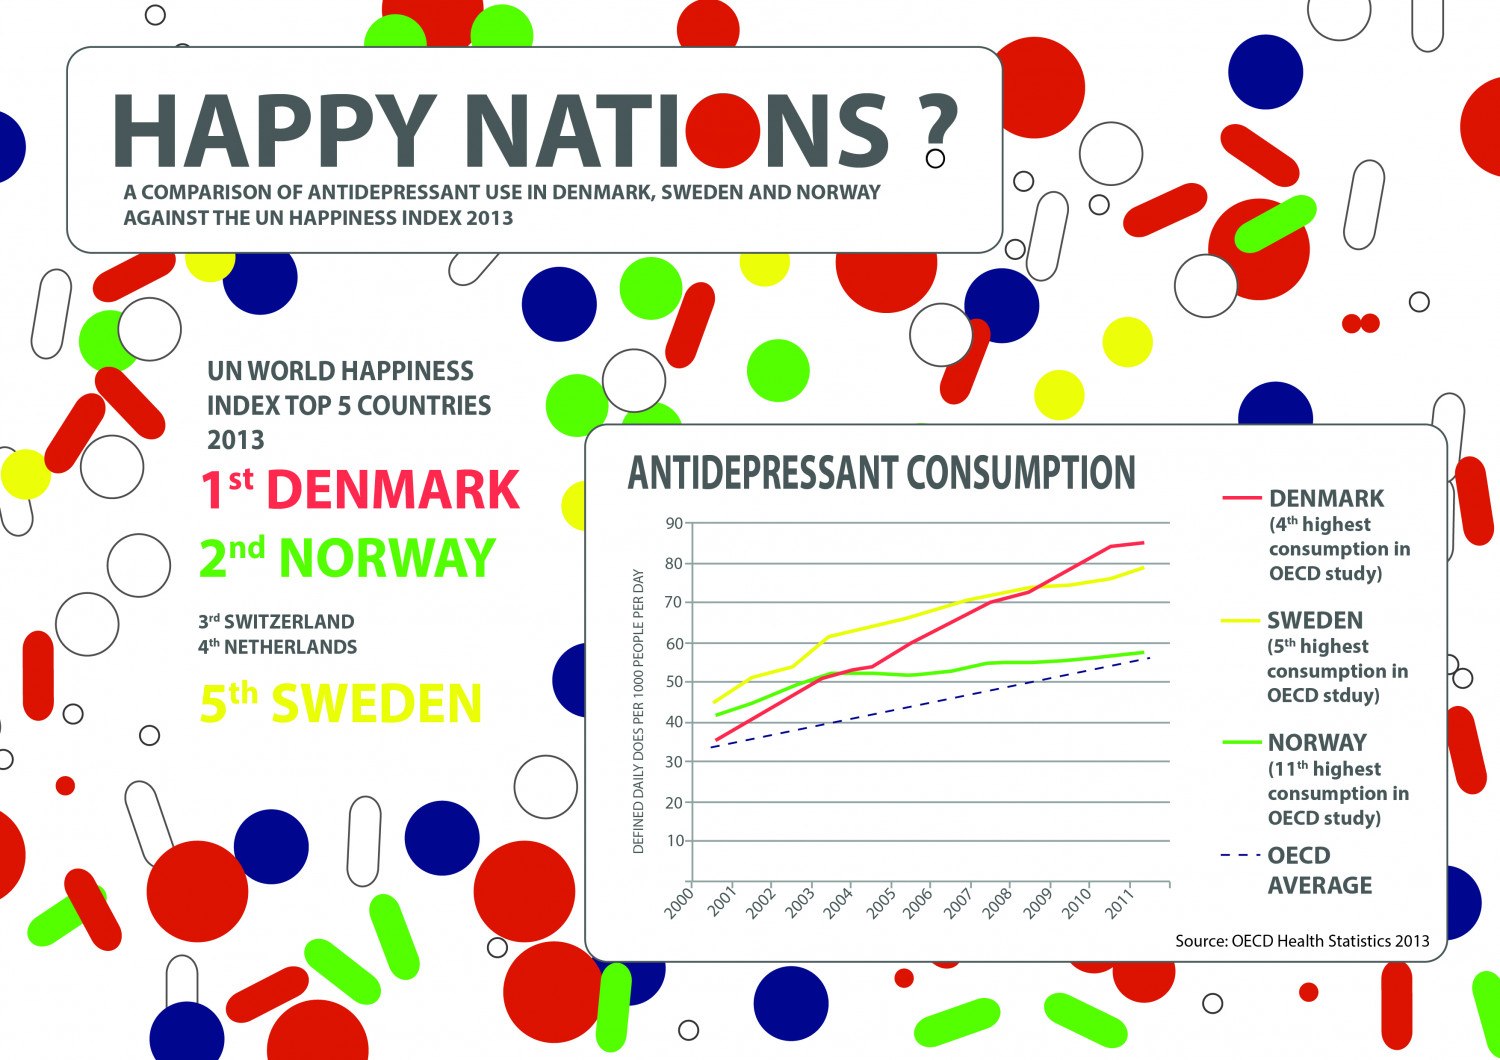 Happy Nations? Antidepressant use in the top rated countries in the 'Happiness Index' Infographic